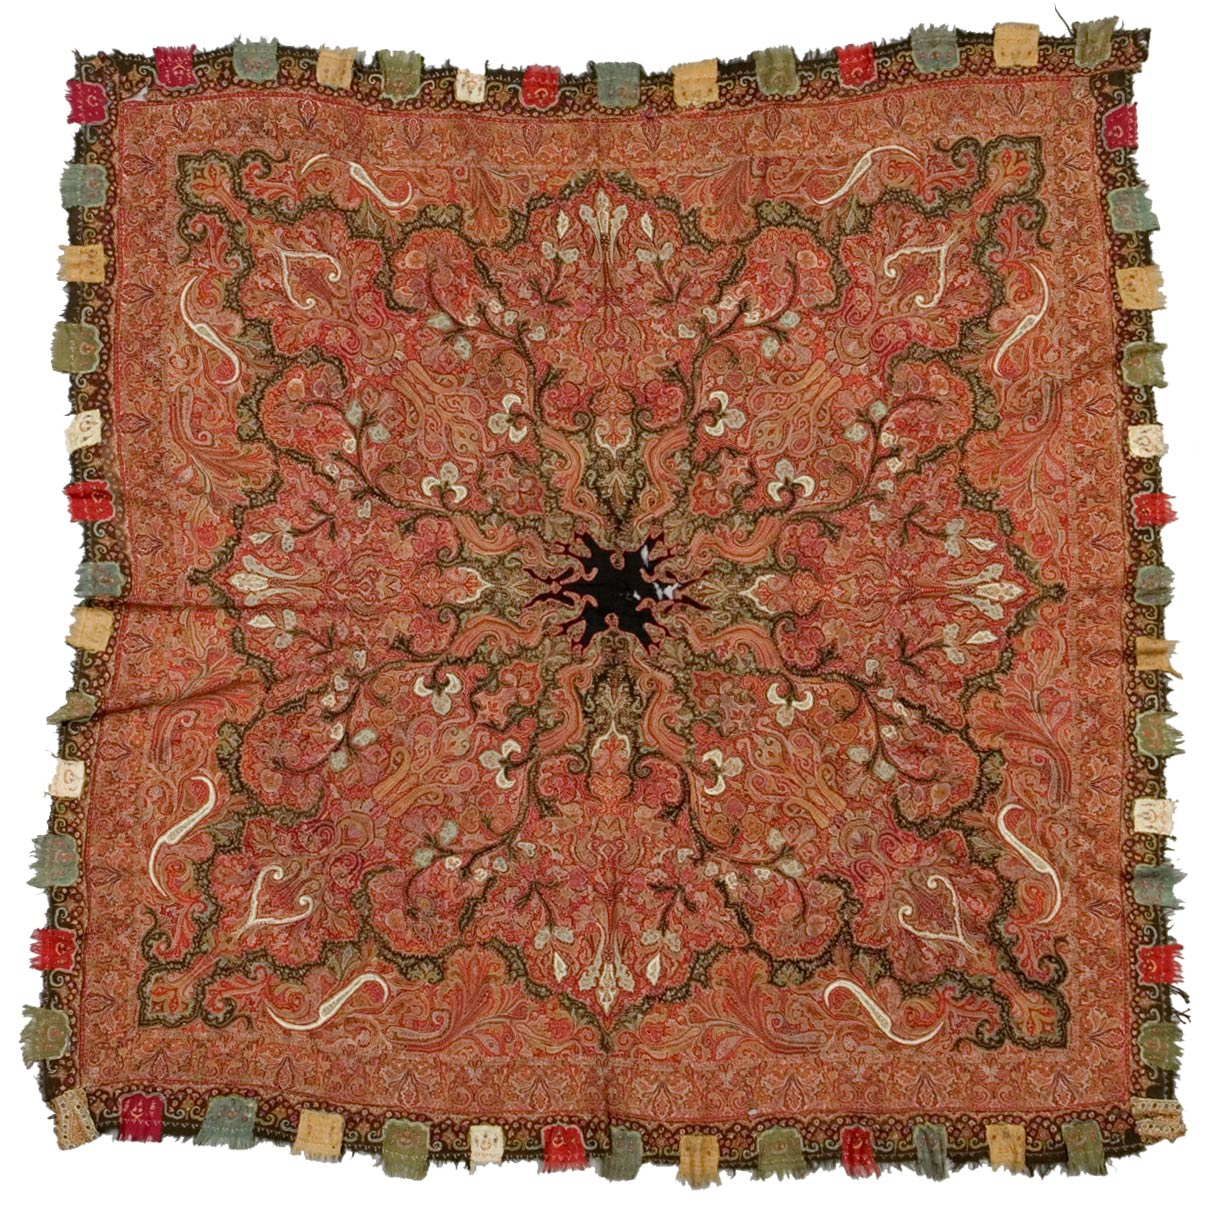 A piece of shawl from northern India